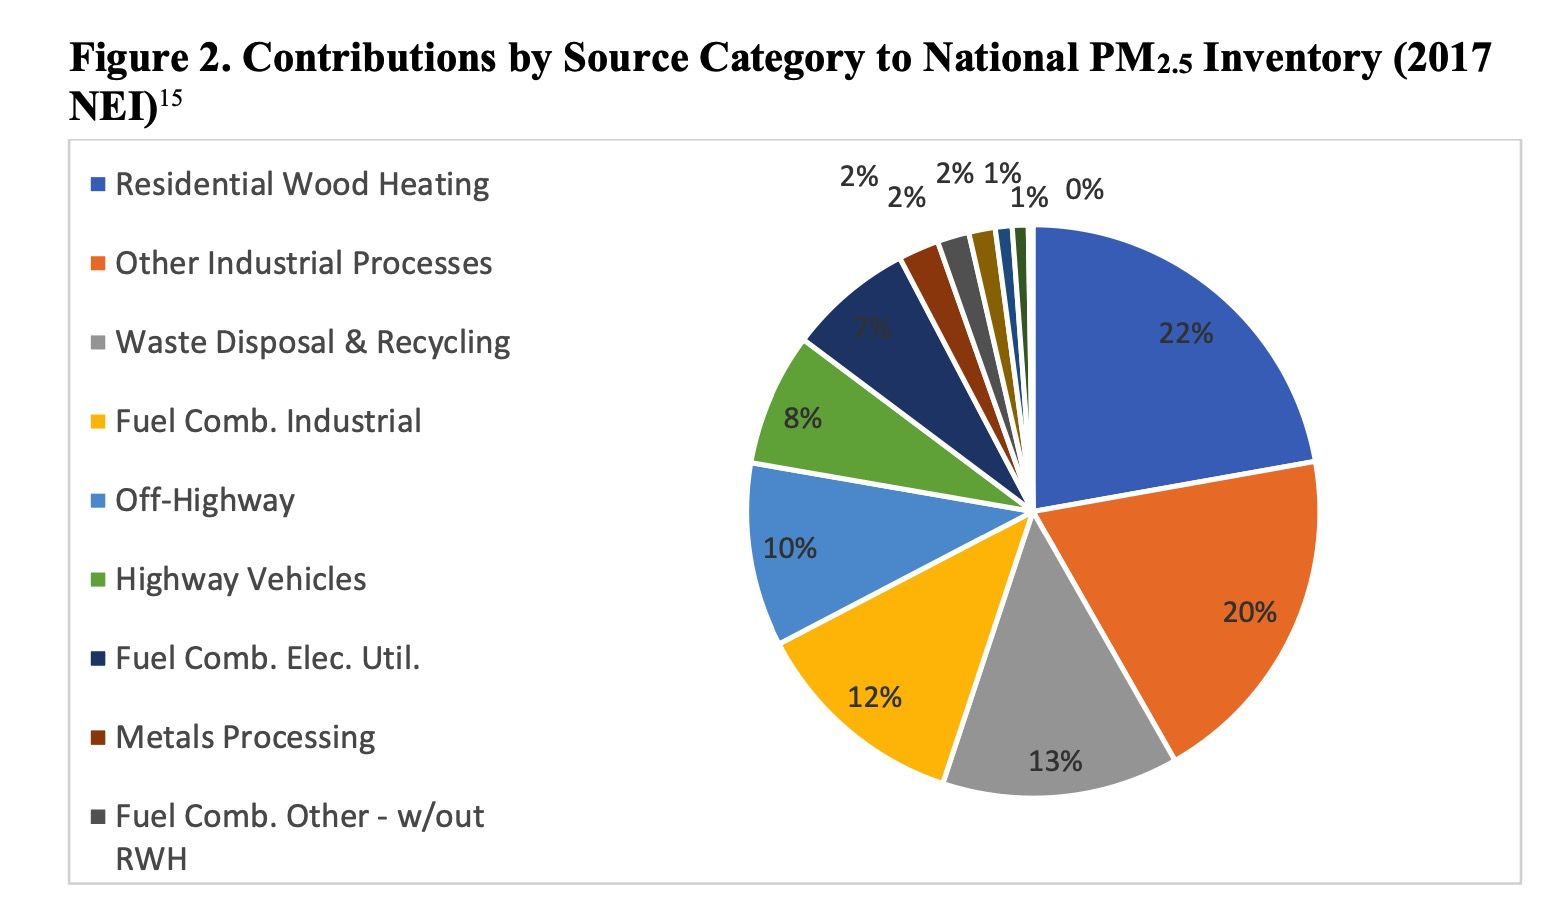 Sources of PM2.5